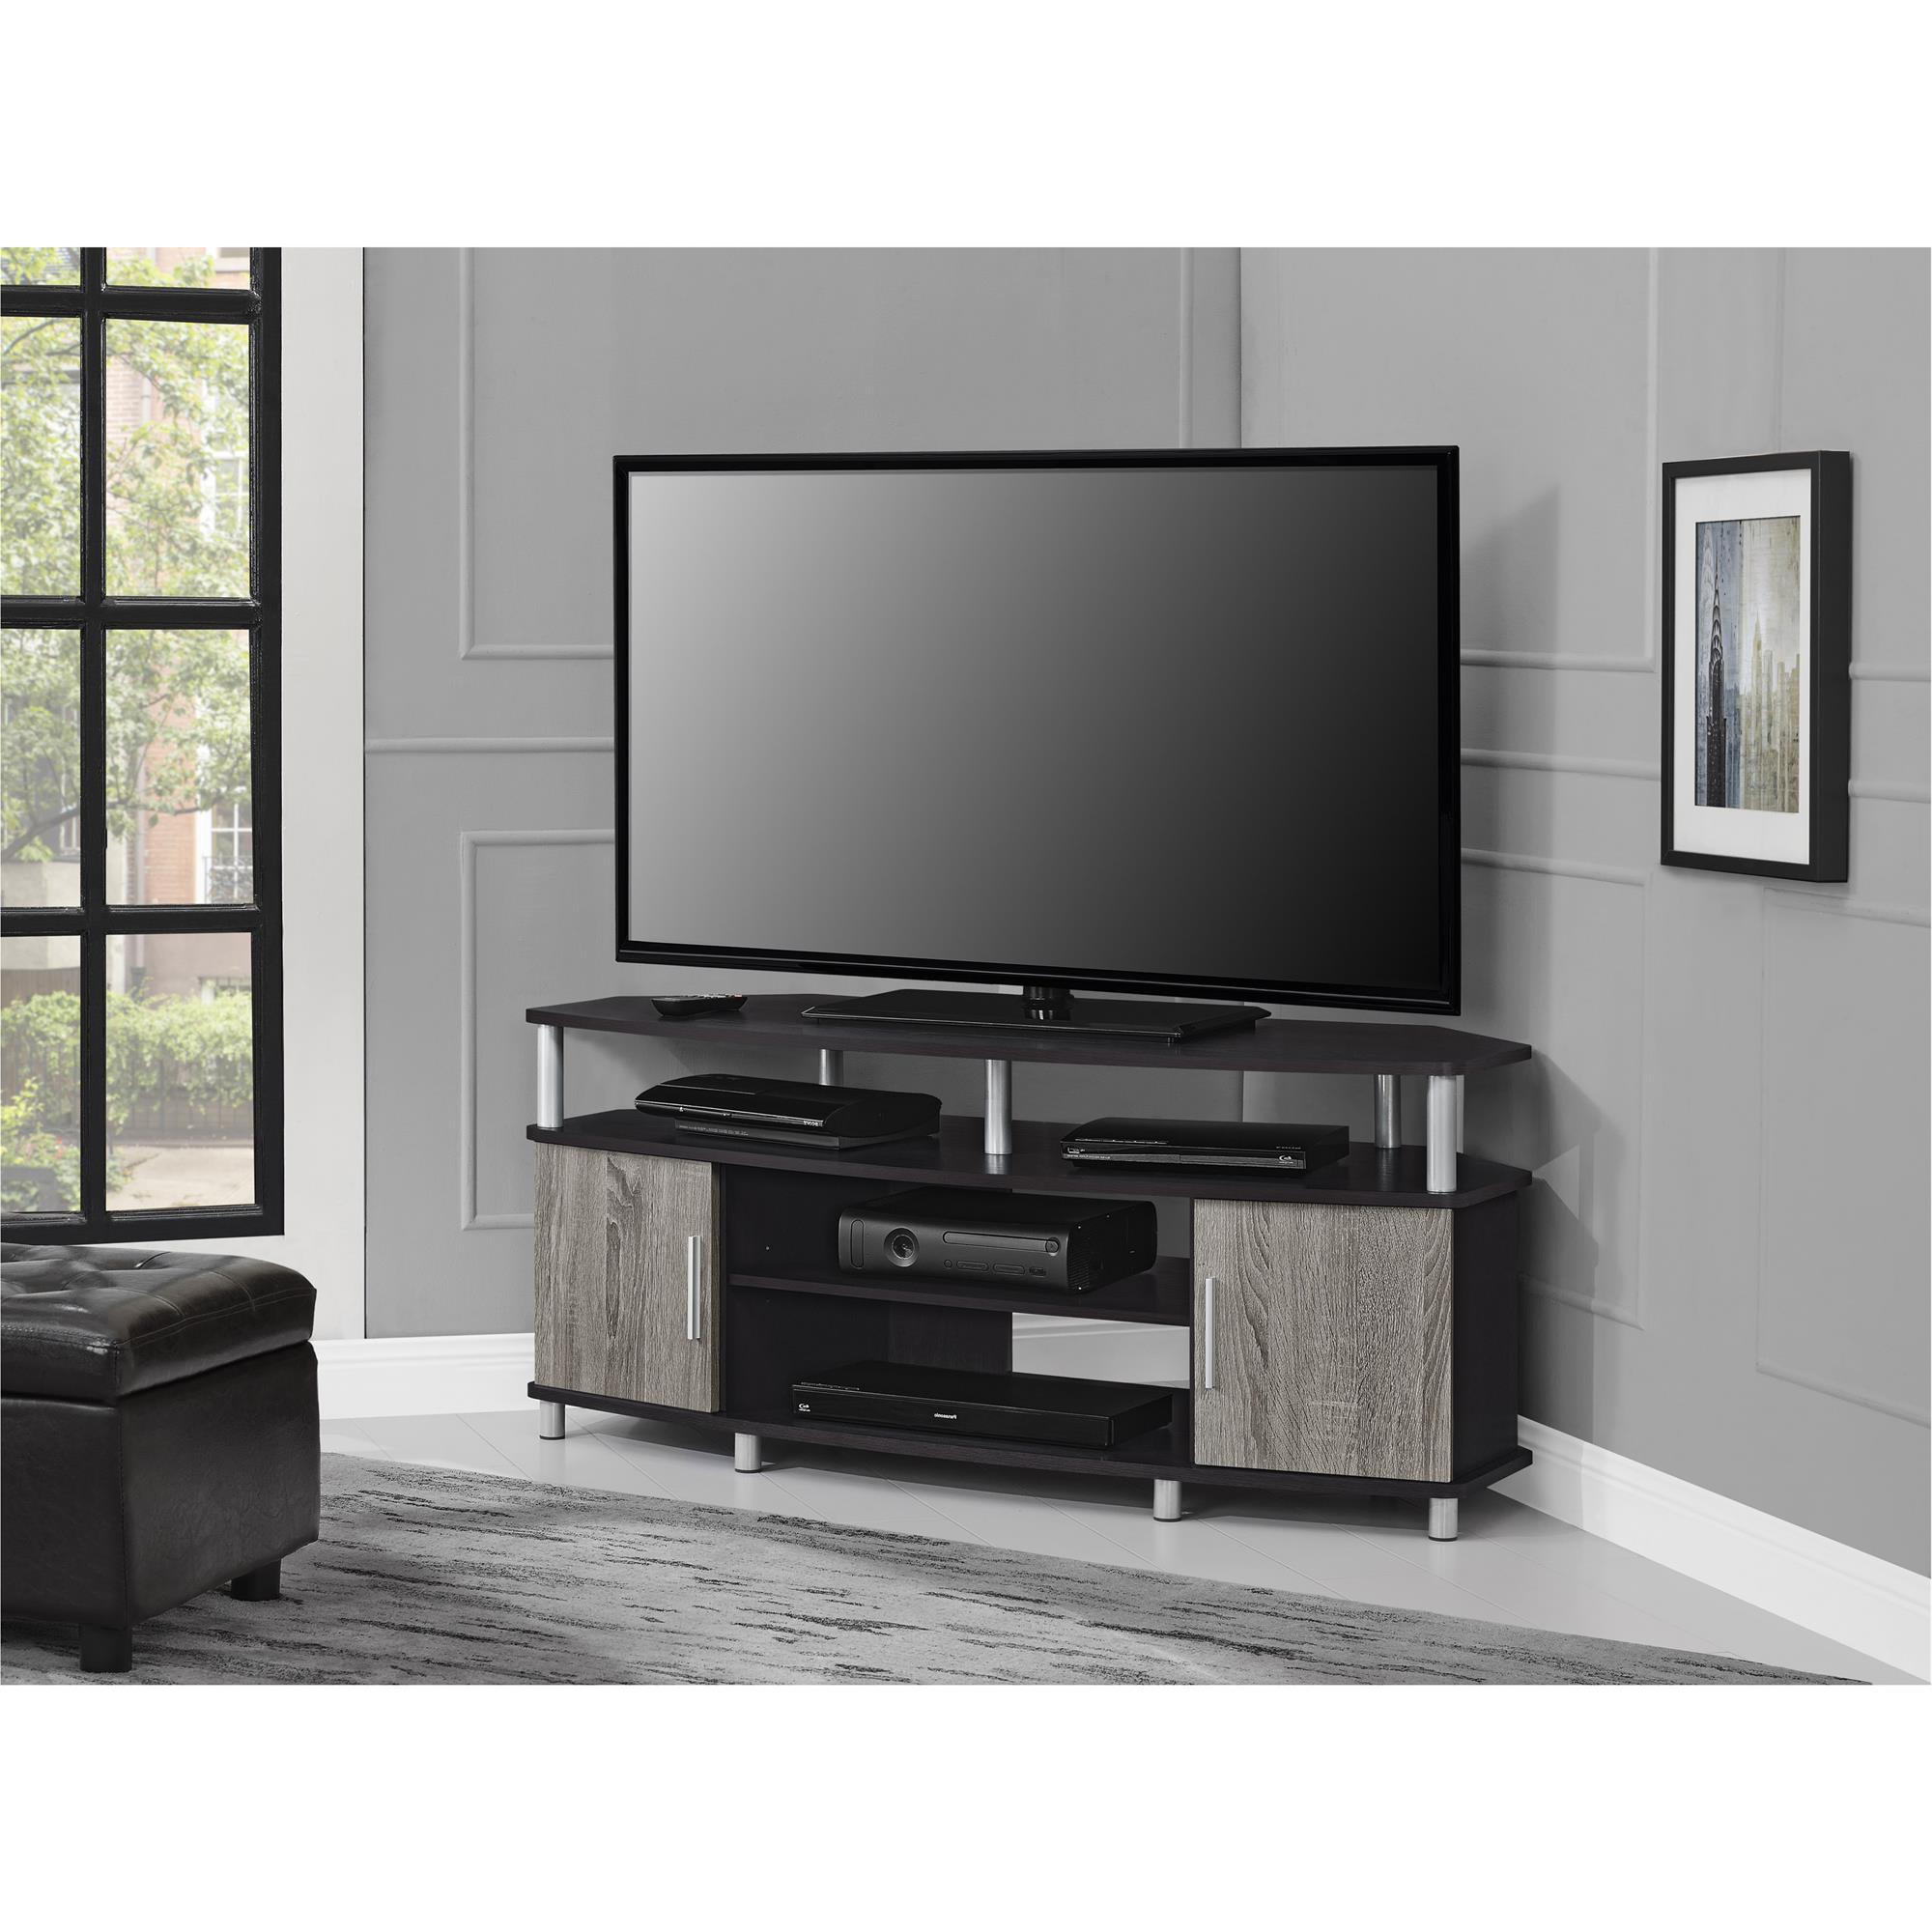 """Ameriwood Home Carson Corner Tv Stand For Tvs Up To 50"""" Wide, Black Regarding Current Tv Stands For Corners (Gallery 2 of 20)"""